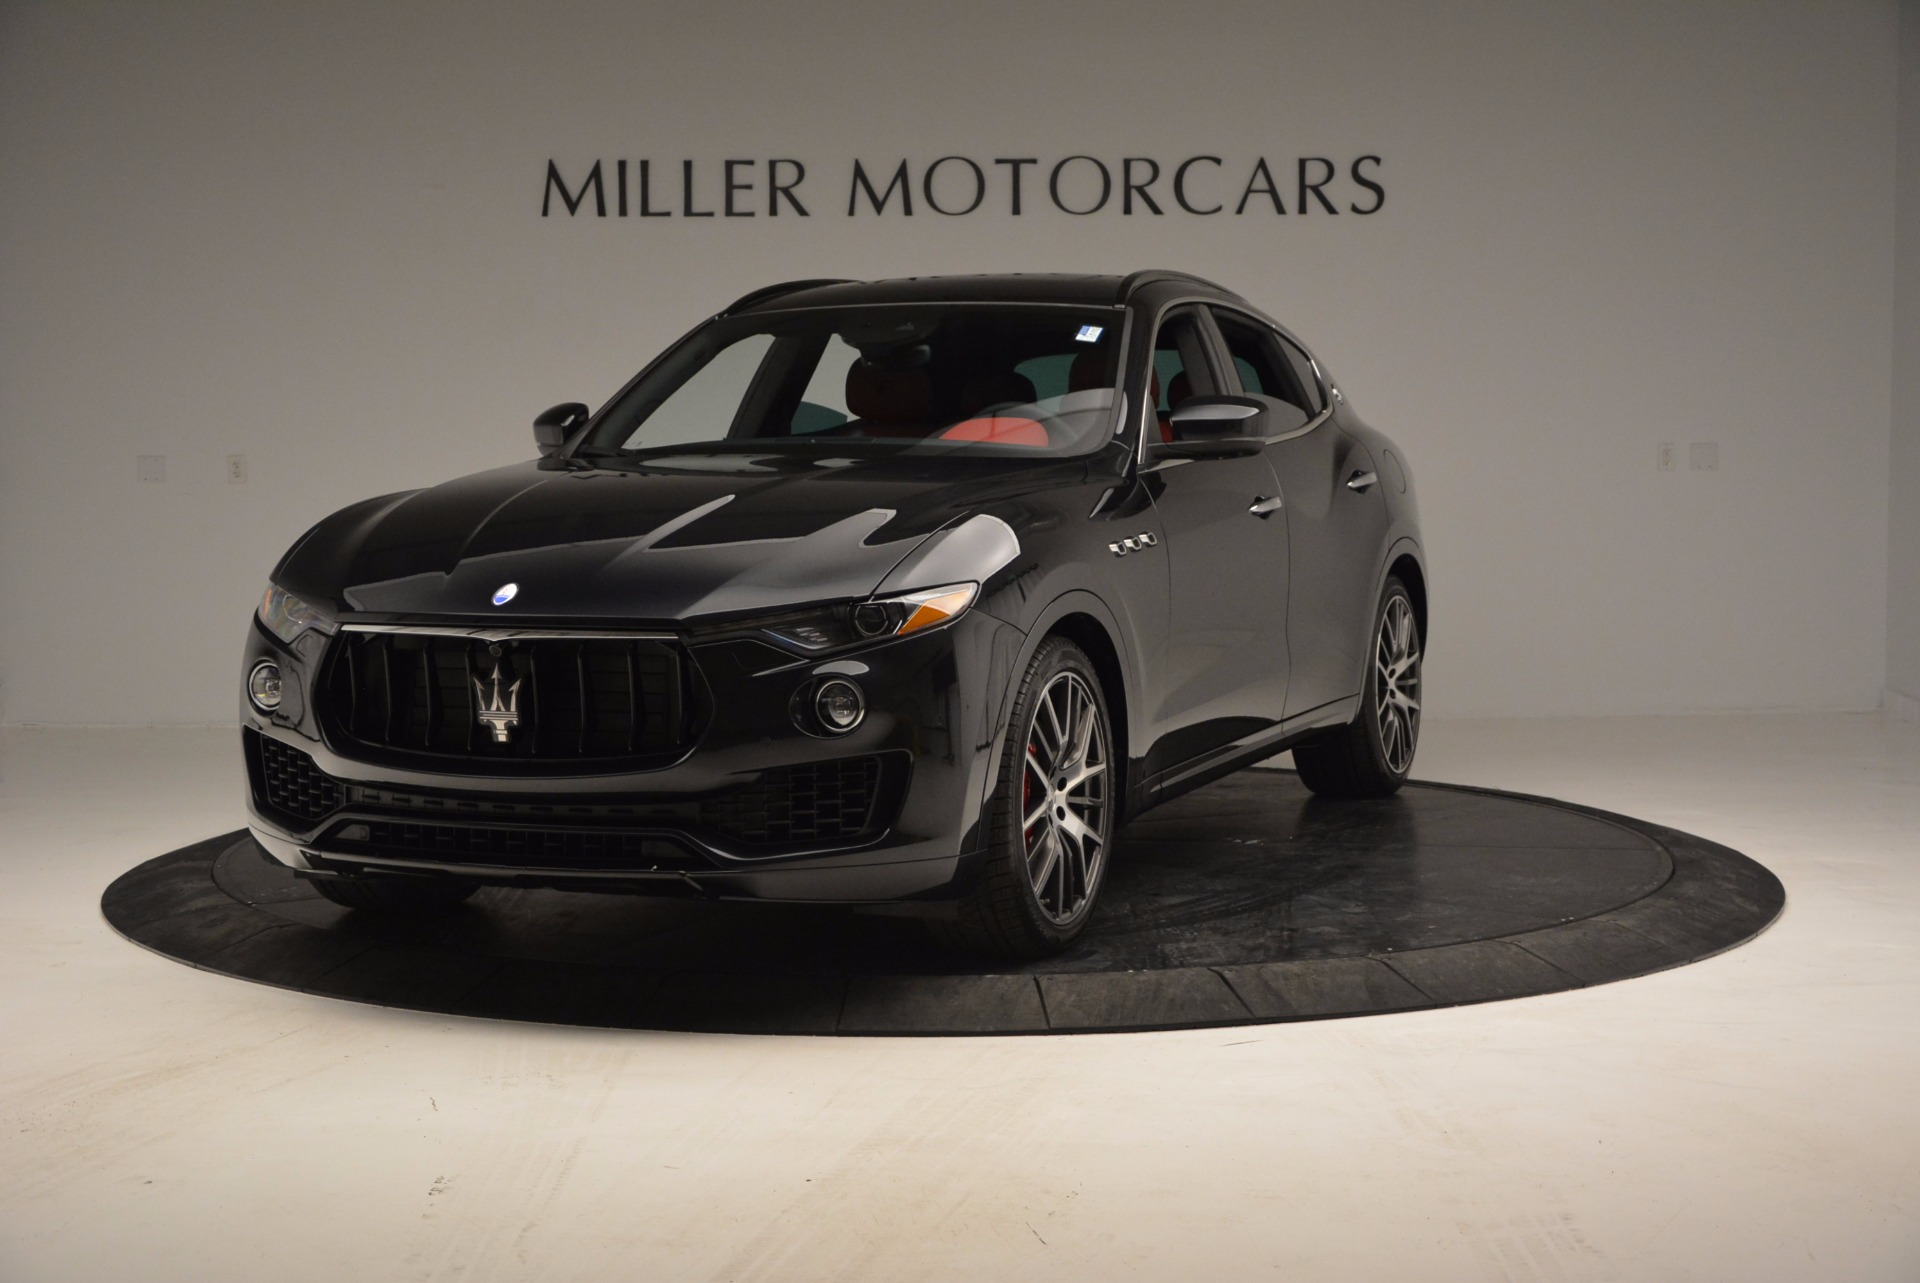 Used 2017 Maserati Levante S Q4 for sale Sold at McLaren Greenwich in Greenwich CT 06830 1